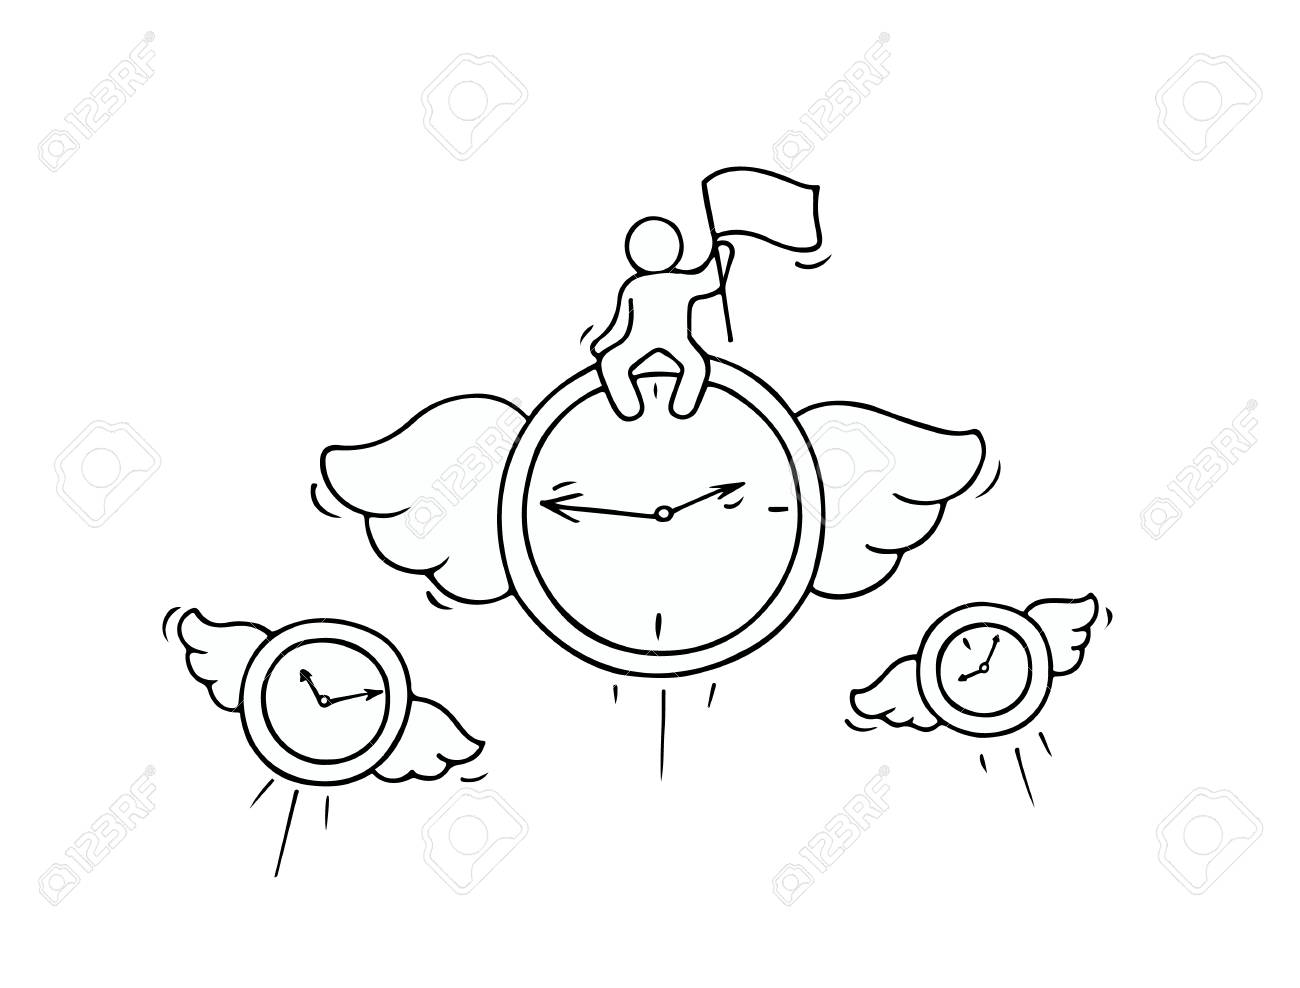 1300x988 Sketch Of Flying Clocks With Little Worker. Doodle Cute Miniature